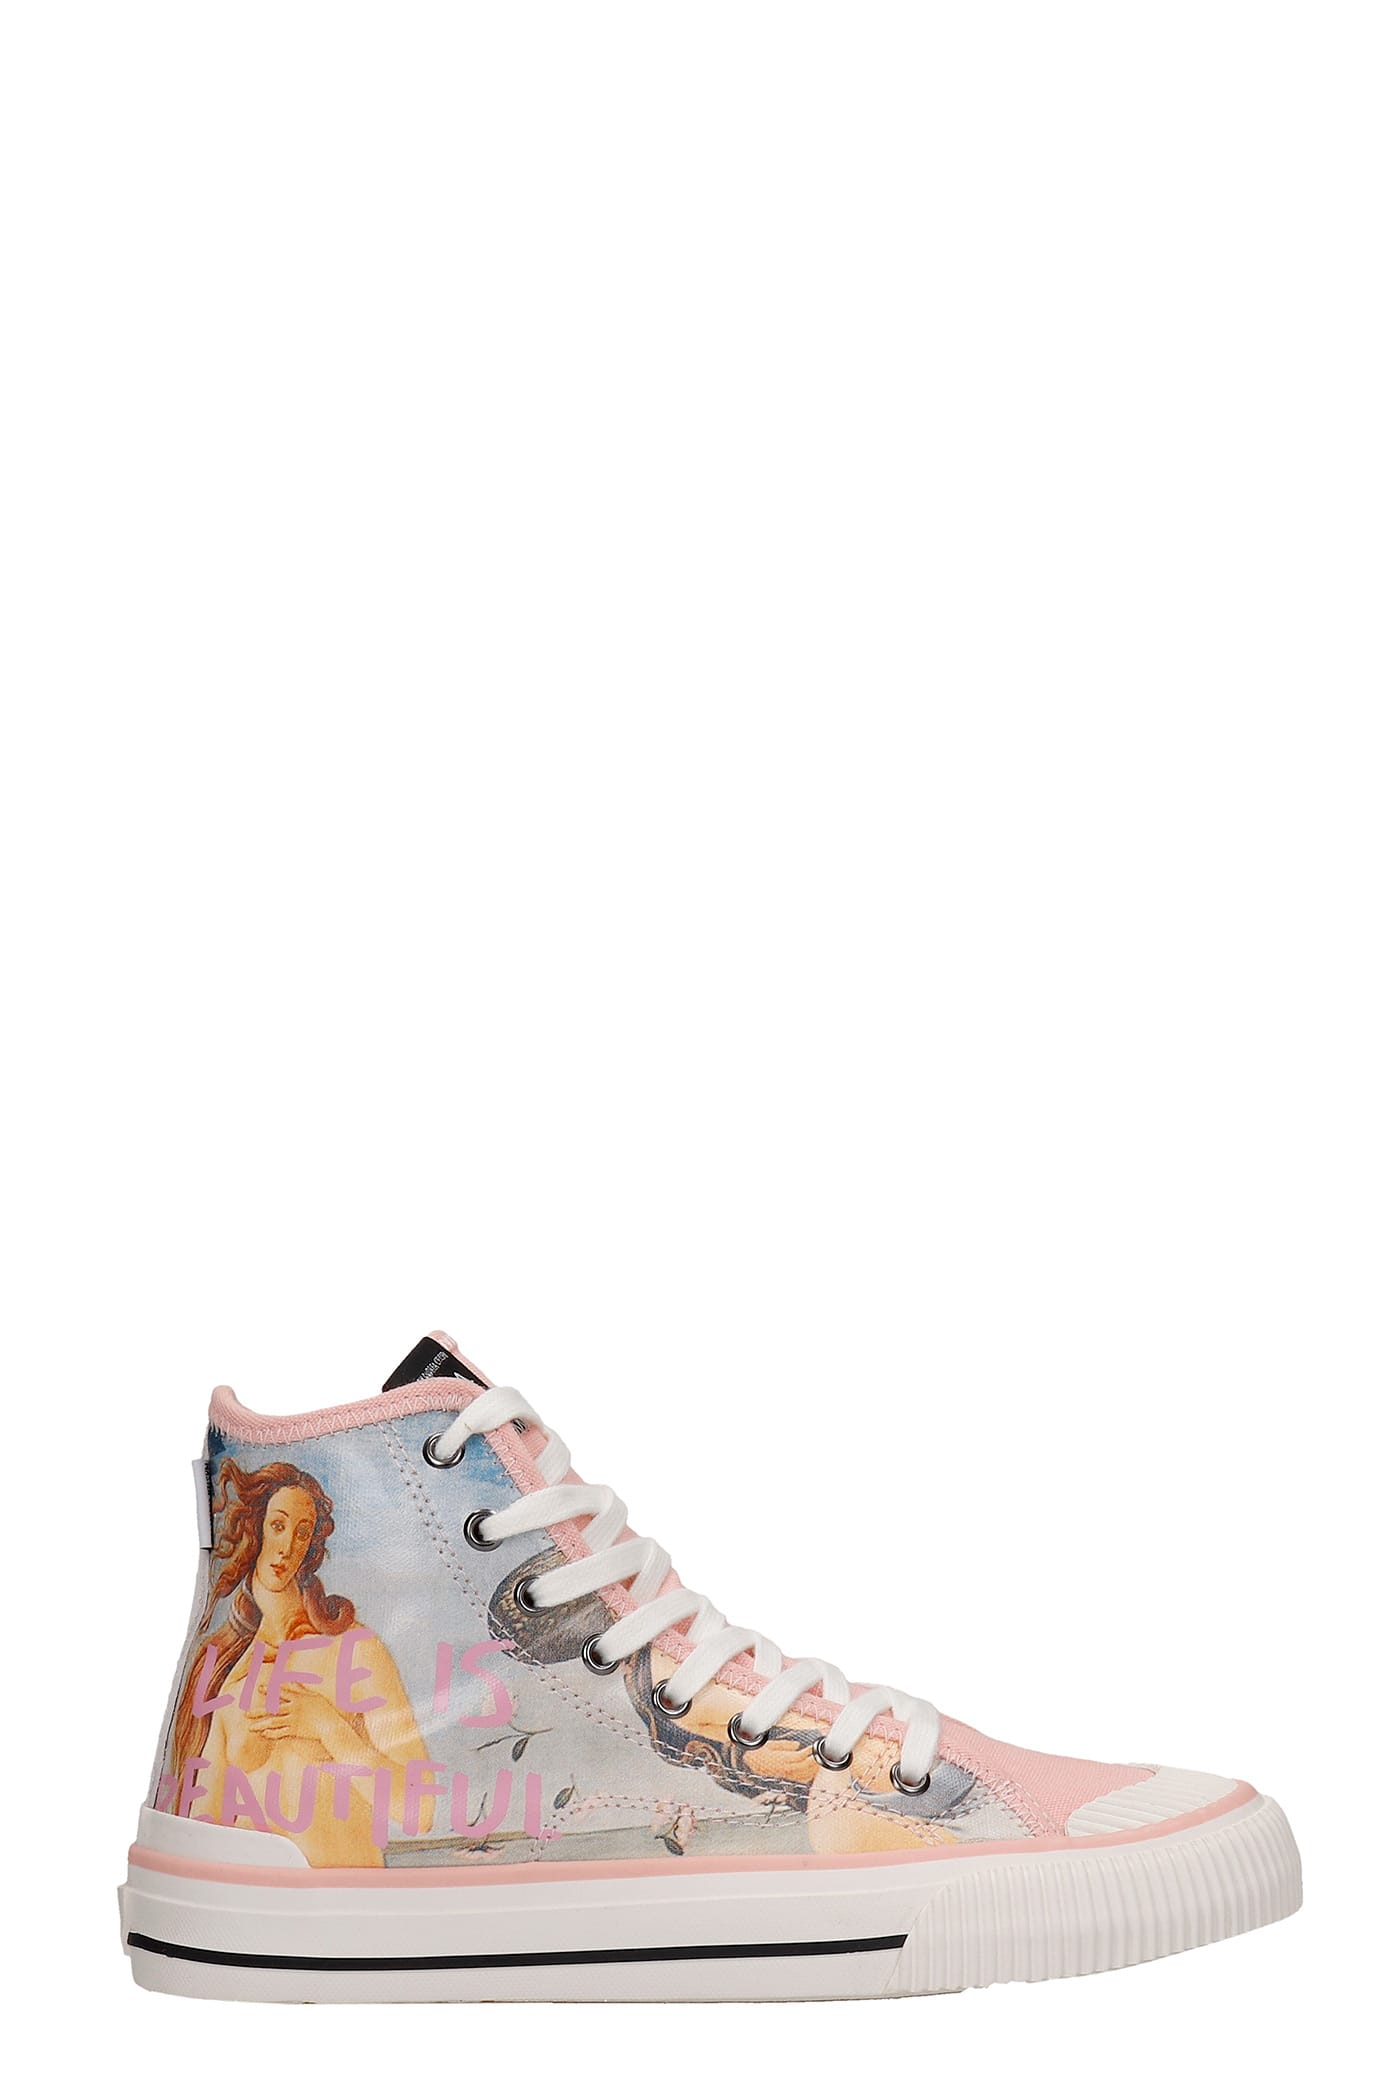 M.O.A. master of arts Sneakers In Rose-pink Canvas